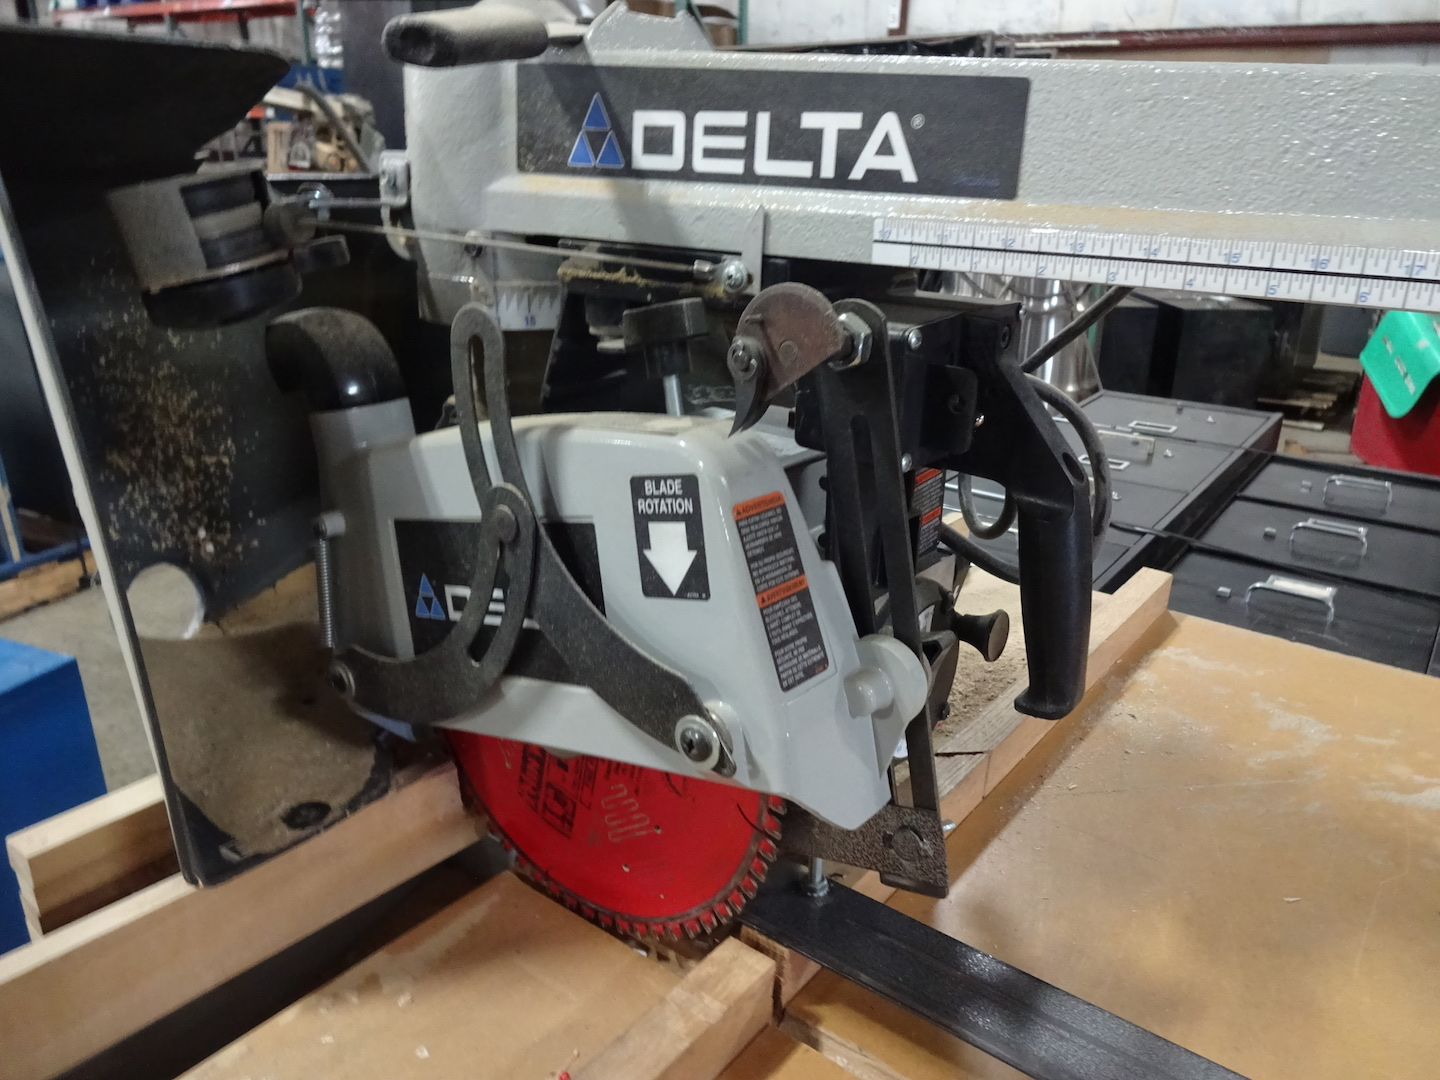 Delta 1-1/2 HP Radial Arm Cut-off Saw, S/N 12F 13906 2012 22-DP, 110 Volt - Image 3 of 3